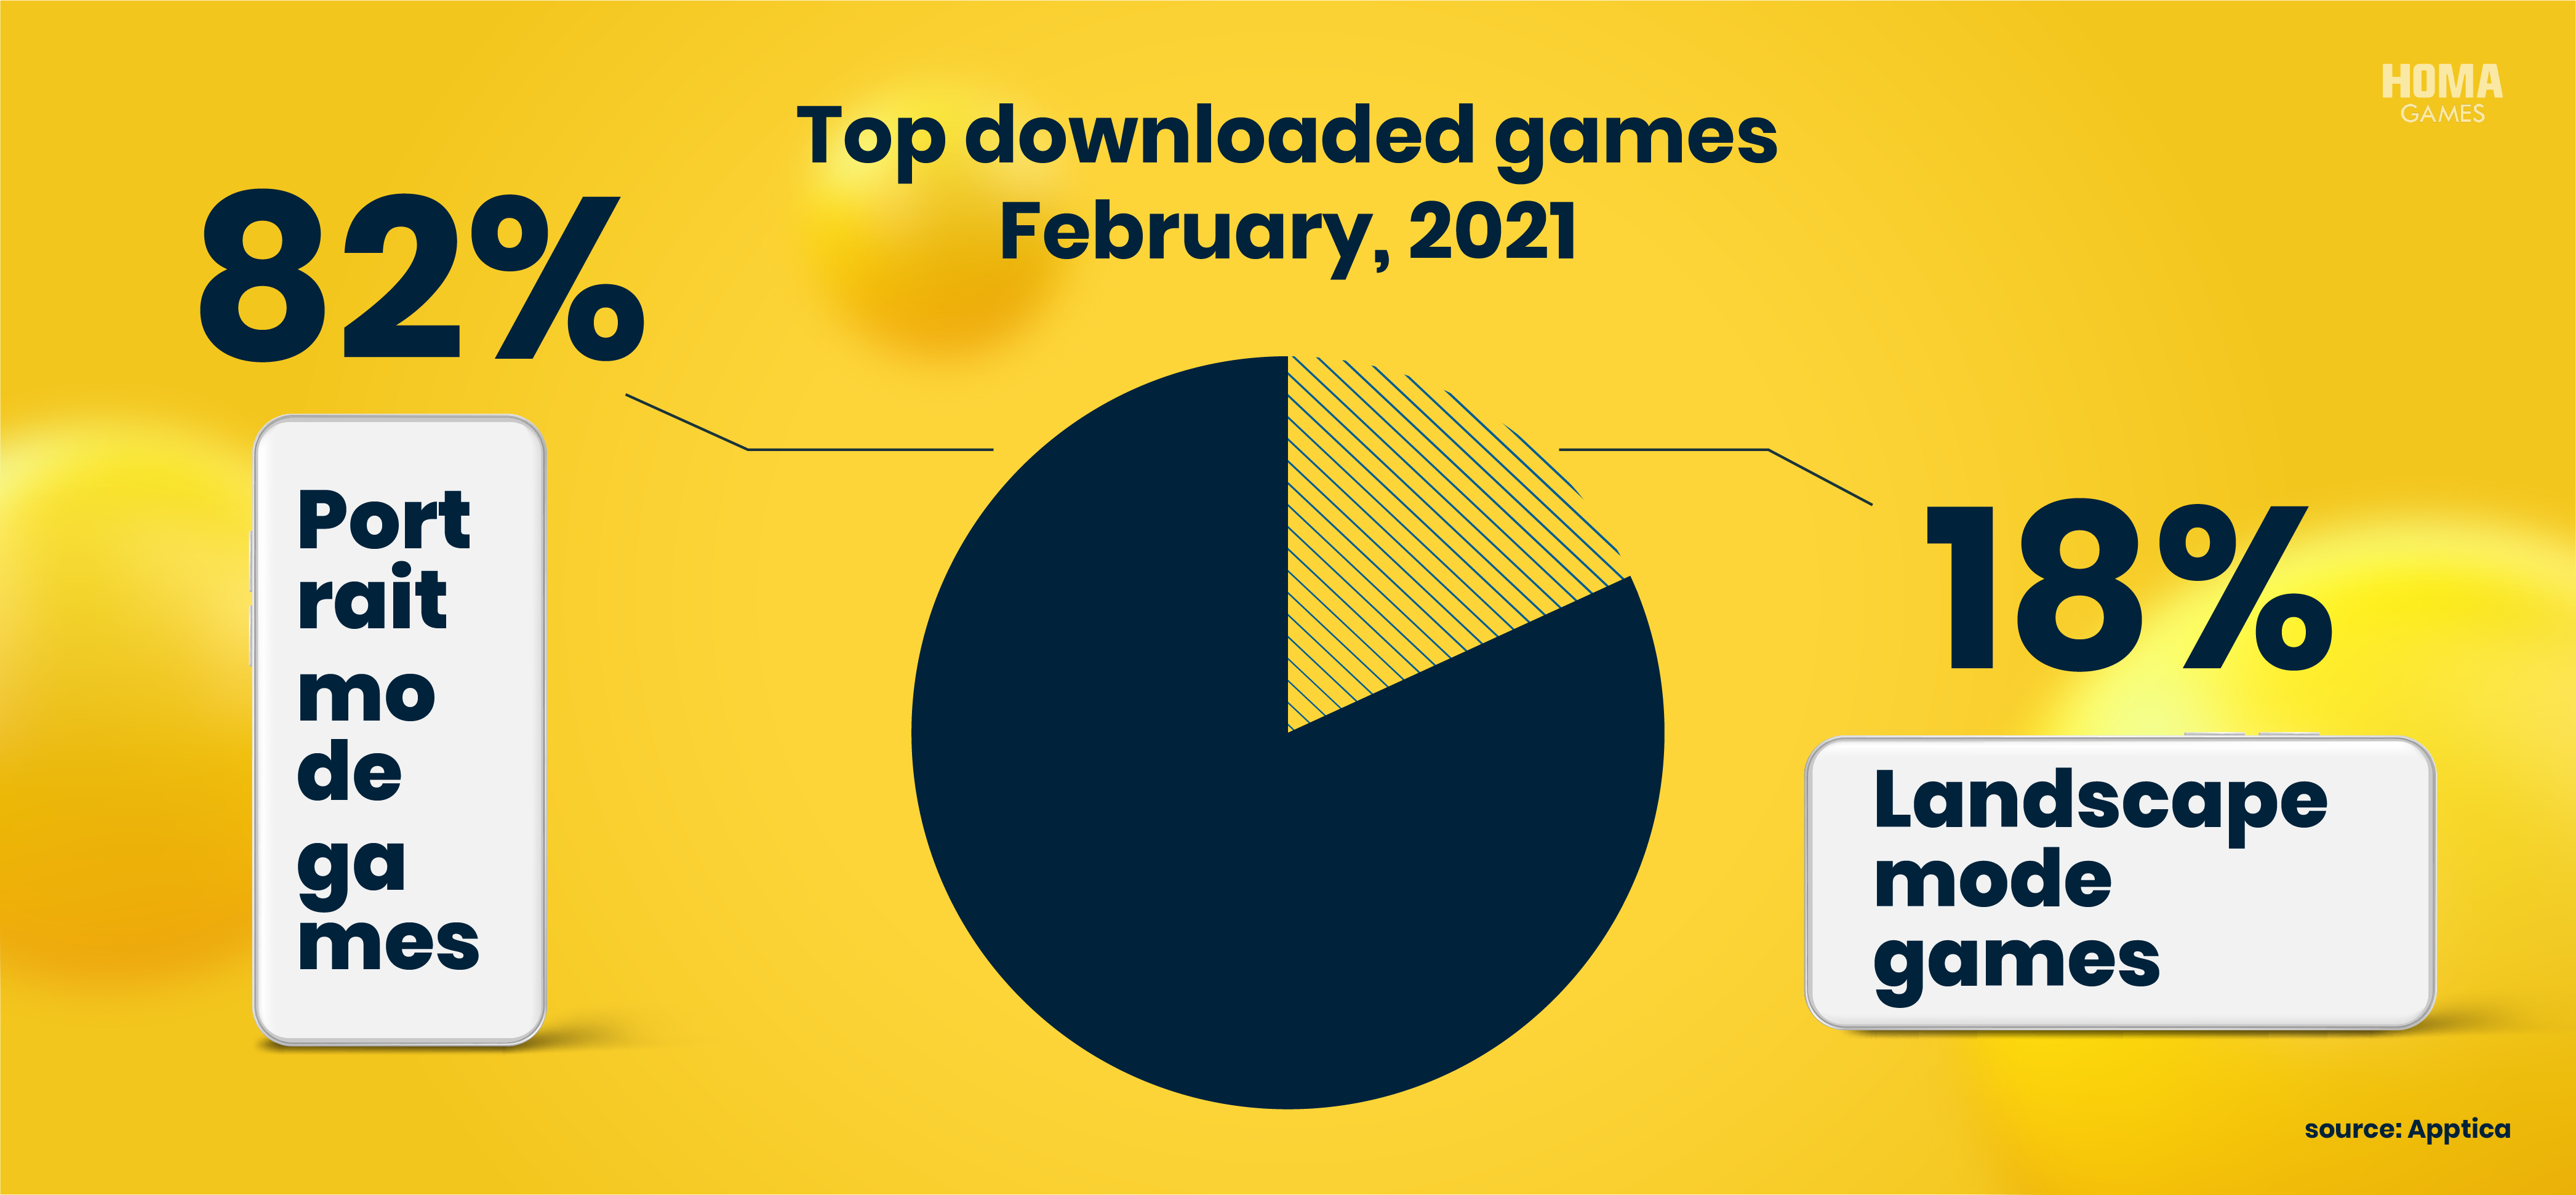 82% of top downloaded games in February 2021 are designed for portrait mode.